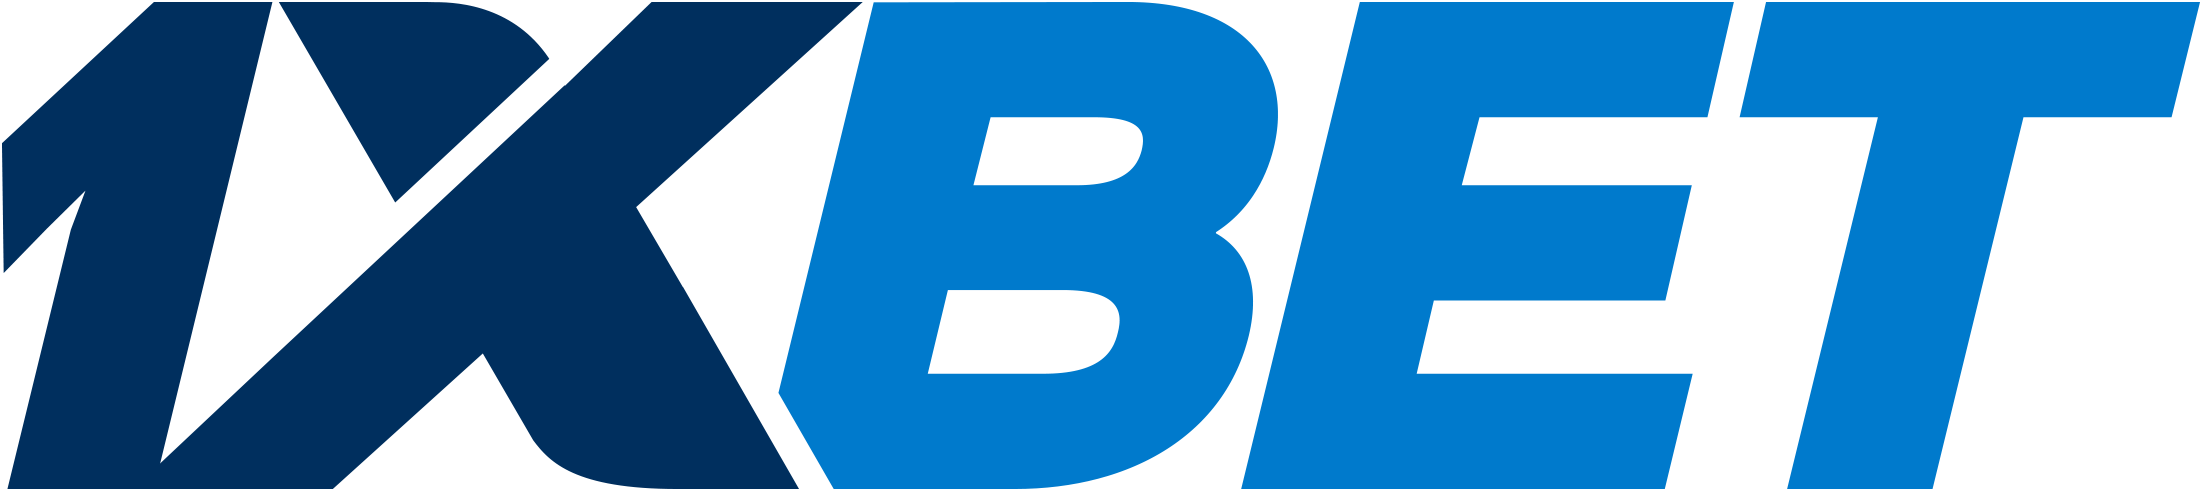 1xbet first sports betting company